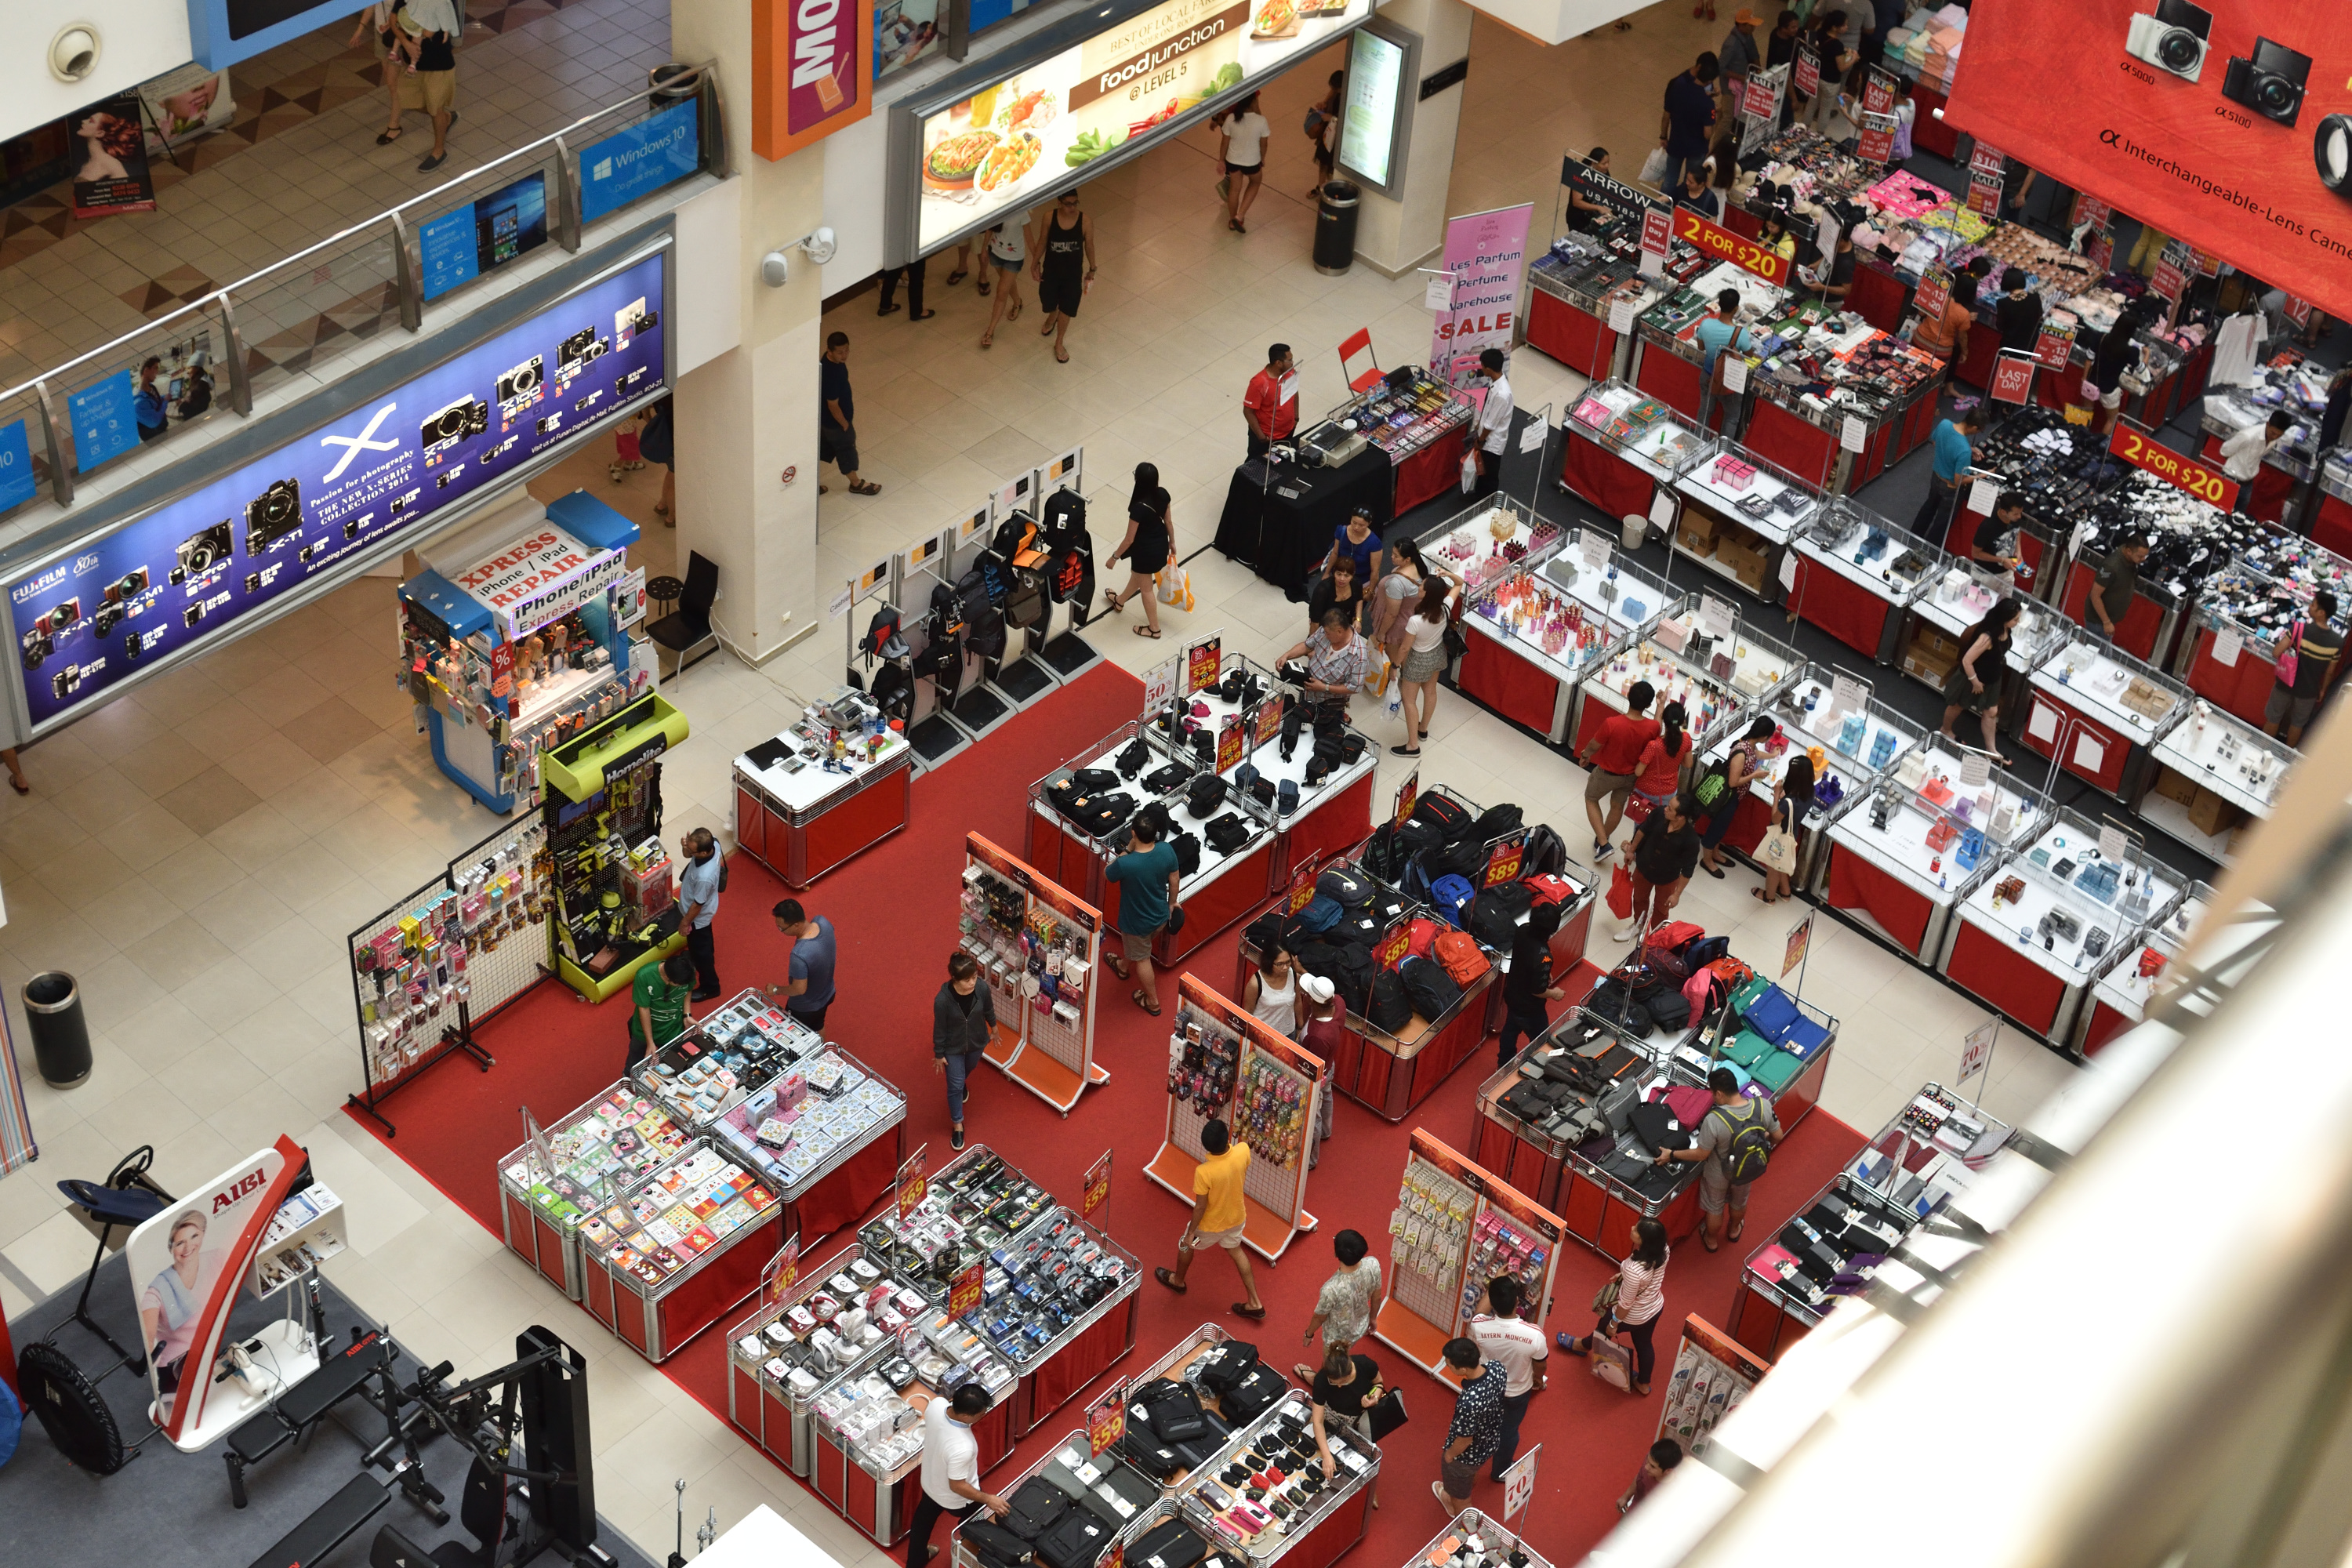 The atrium fair is more crowded than usual today (Sunday, 10 April)